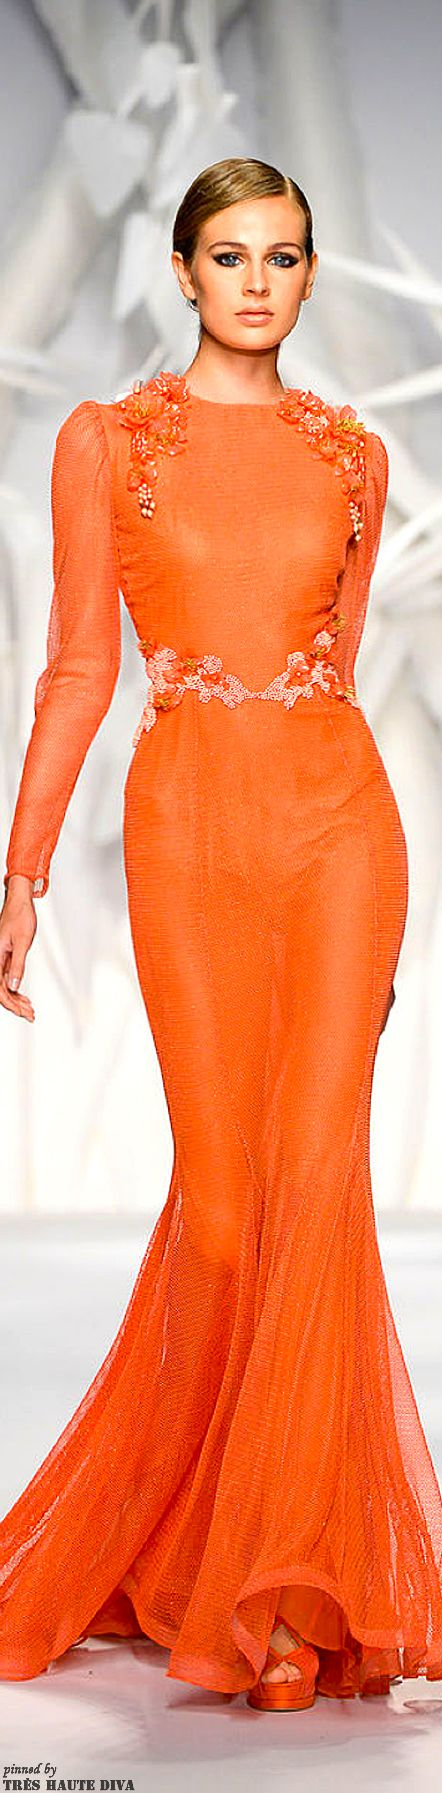 Abed Mahfouz Fall/Winter 2013/14 Couture | The House of Beccaria#